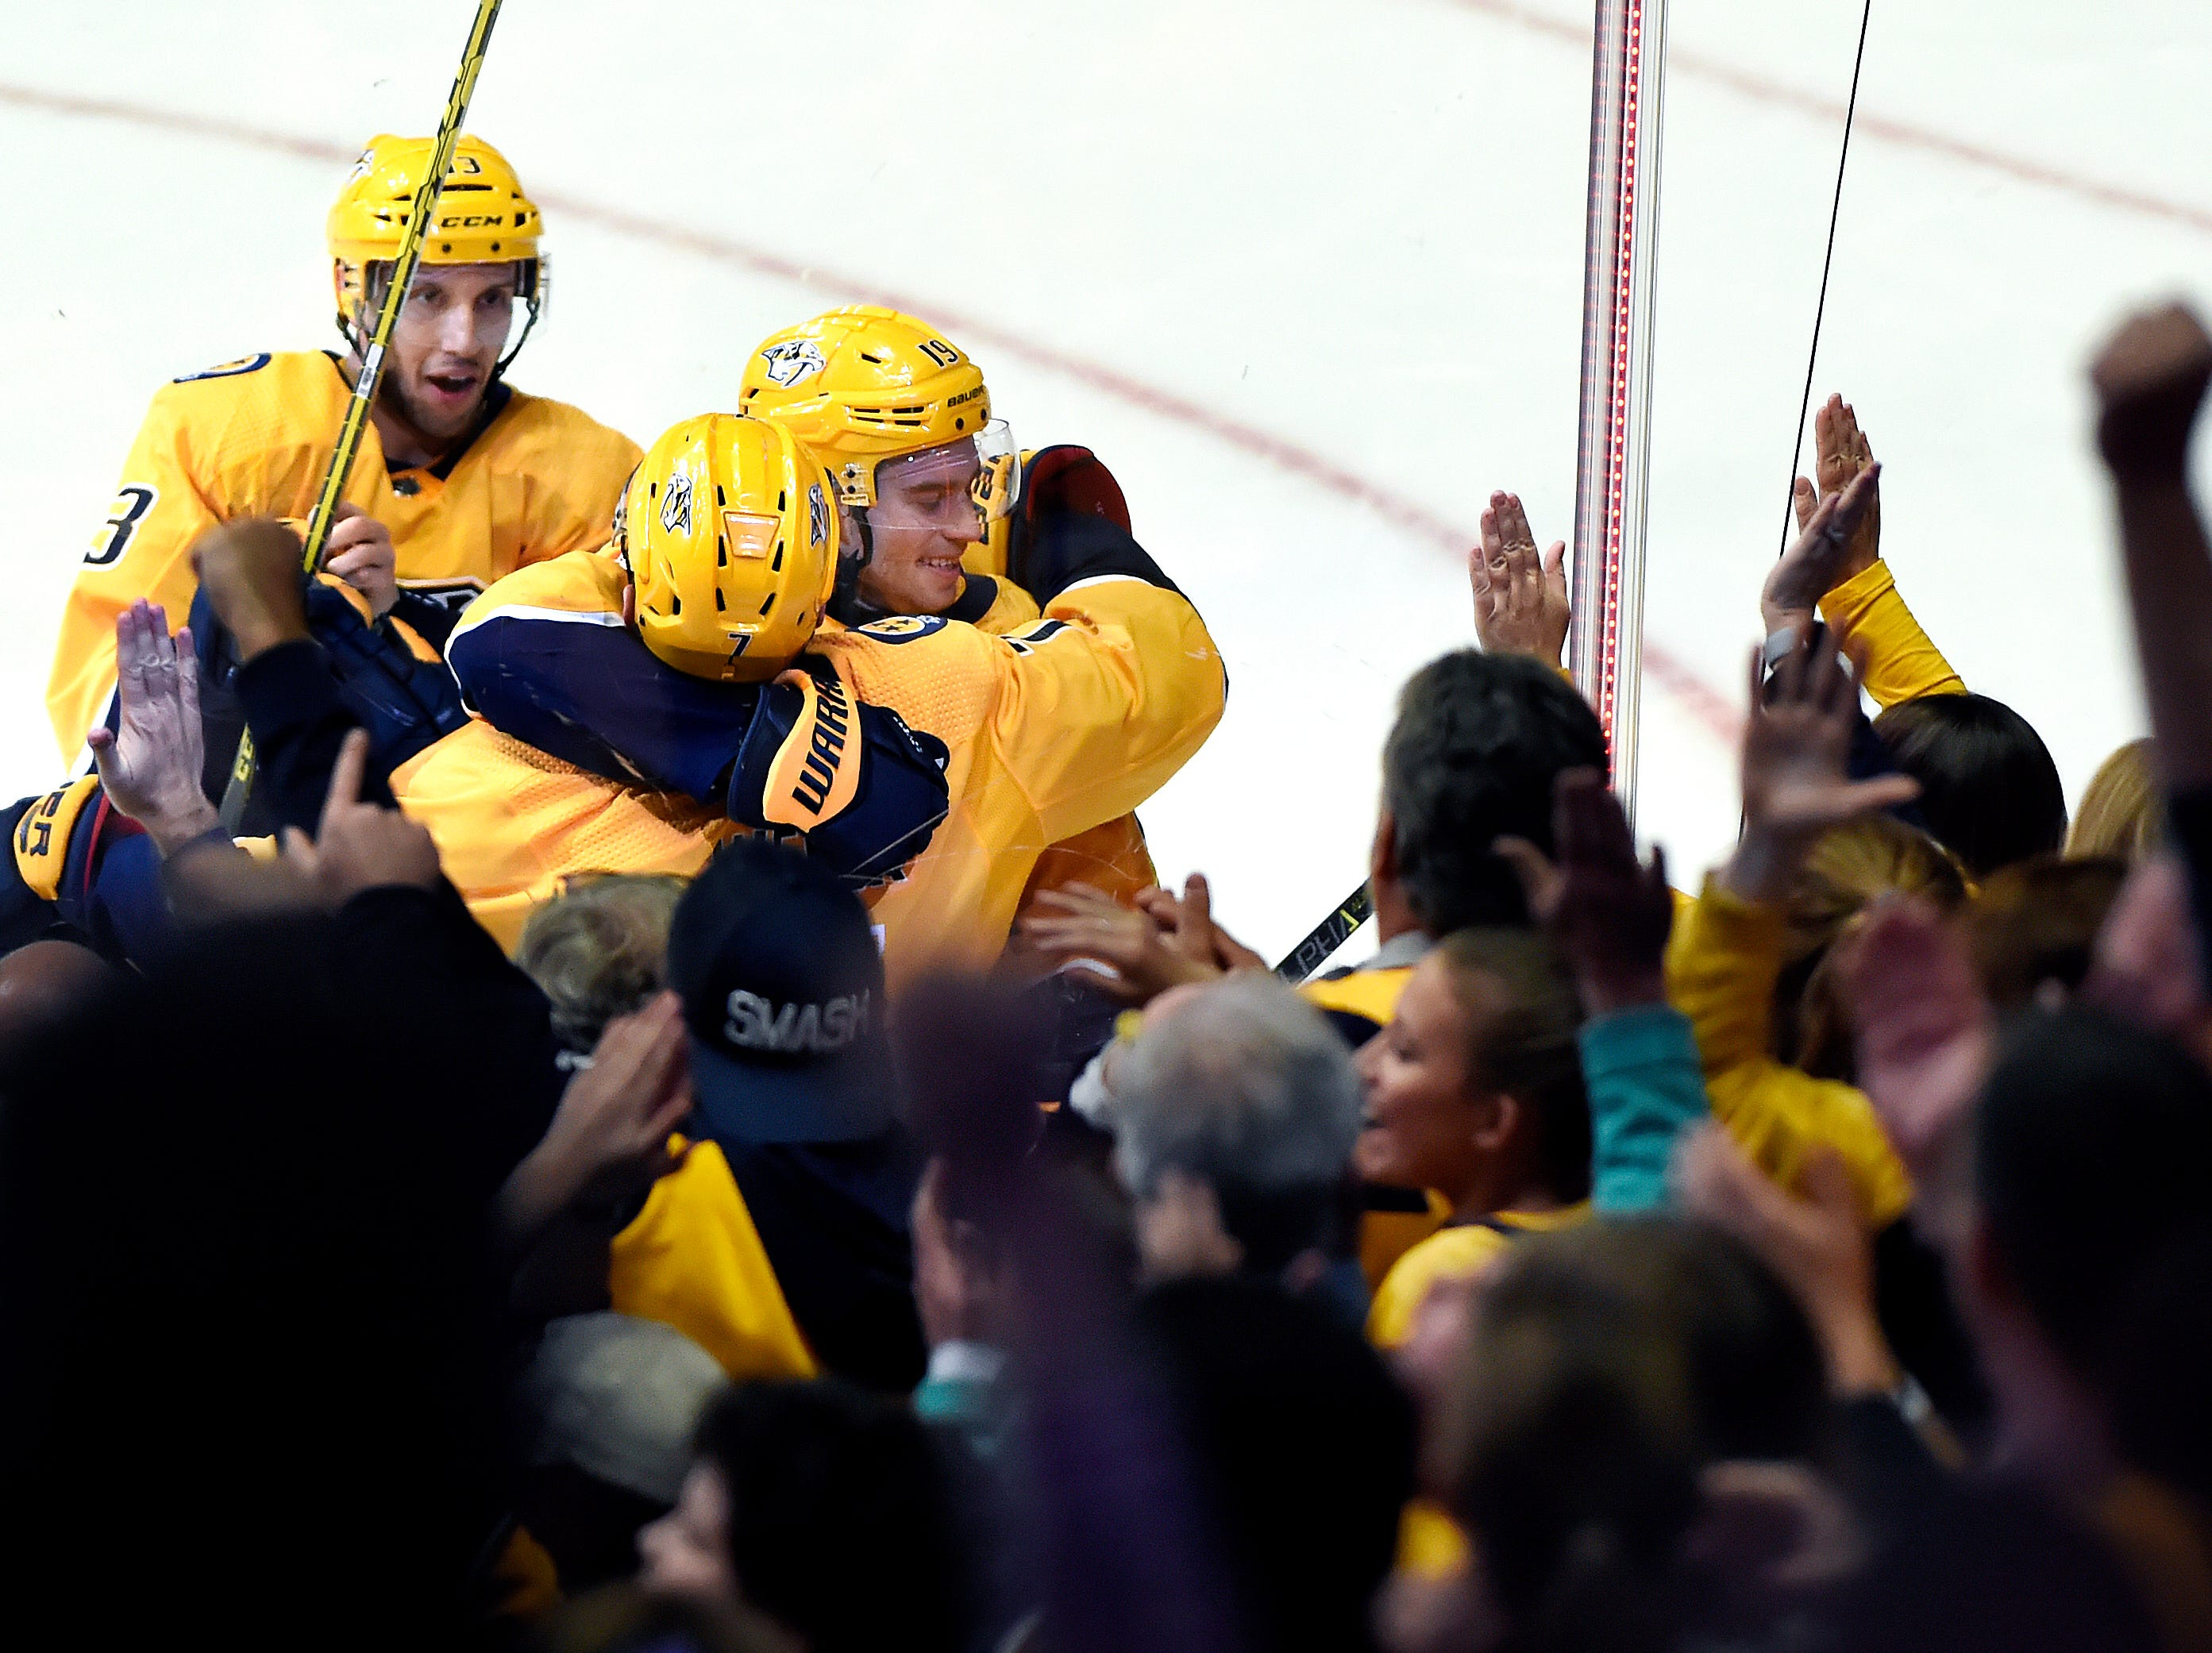 Nov. 17: Predators 5, Kings 3 -- Nashville Predators center Calle Jarnkrok (19), of Sweden, celebrates with defenseman Yannick Weber (7), of Switzerland, and center Nick Bonino (13) after scoring his third goal, giving him a hat trick, against the Los Angeles Kings during the third period of an NHL hockey game Saturday, Nov. 17, 2018, in Nashville, Tenn.